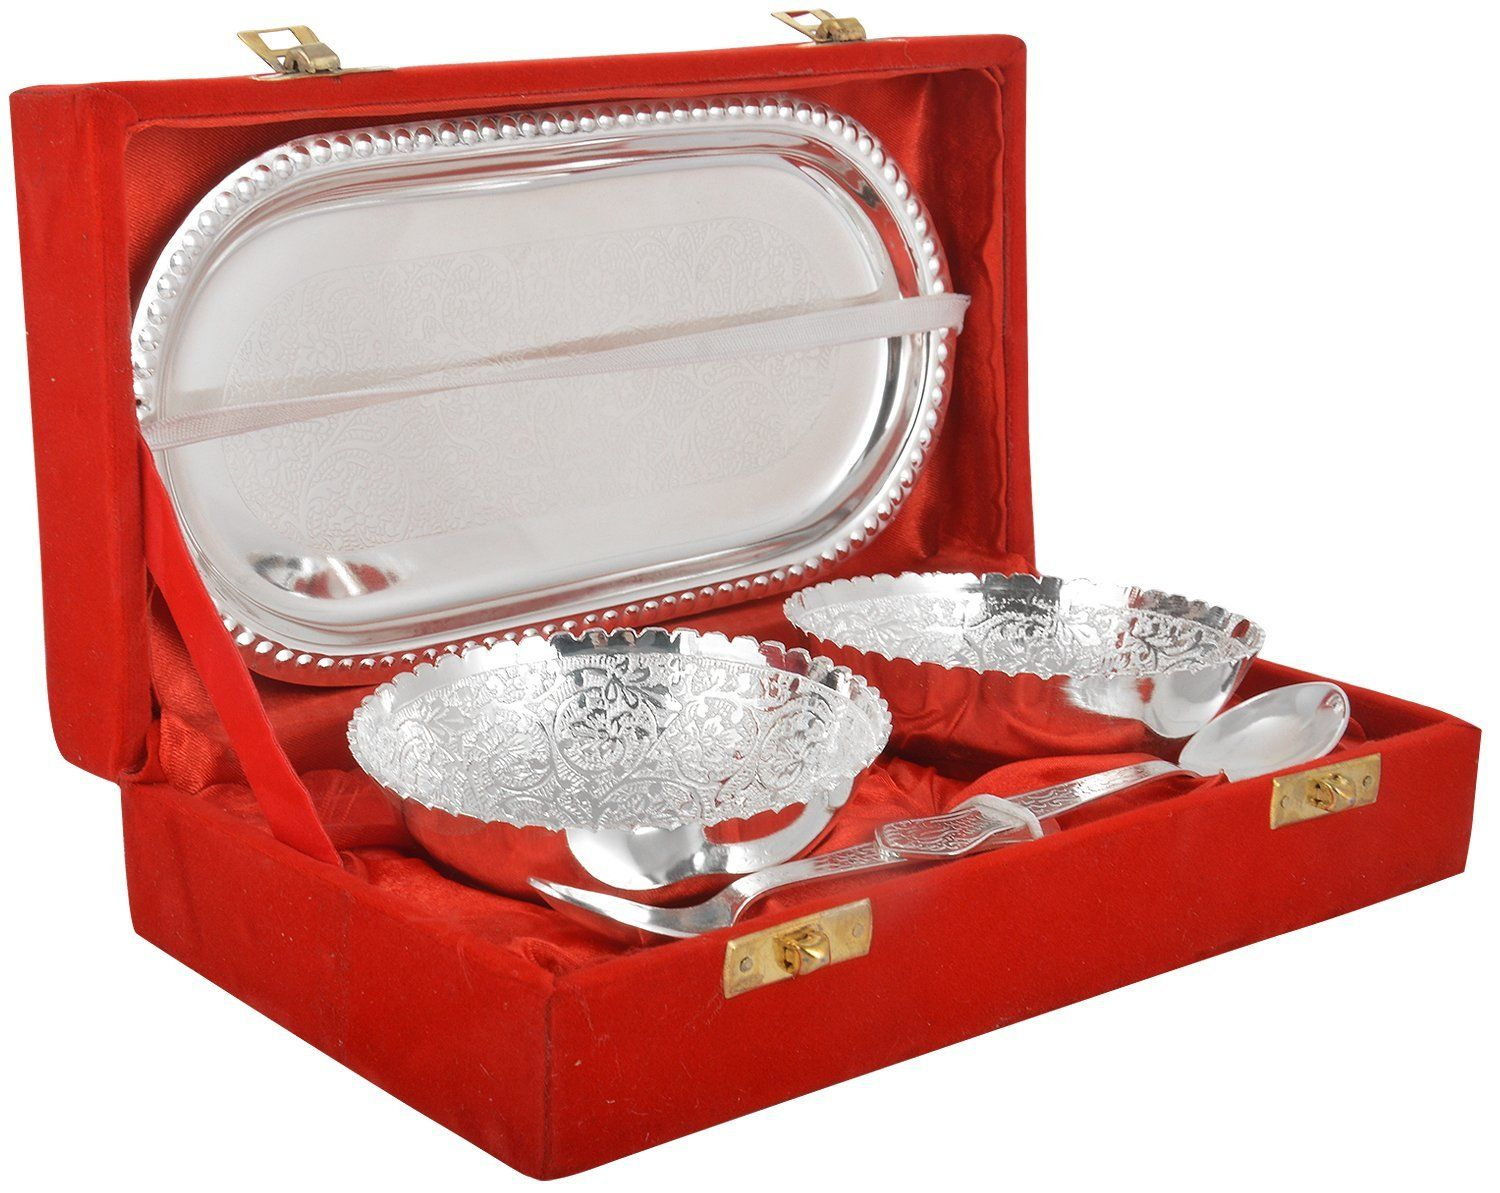 Pure Silver Gift Items For Marriage That Are Priced Below 1000 Silver Gifts Silver Anniversary Gifts Silver Wedding Gifts